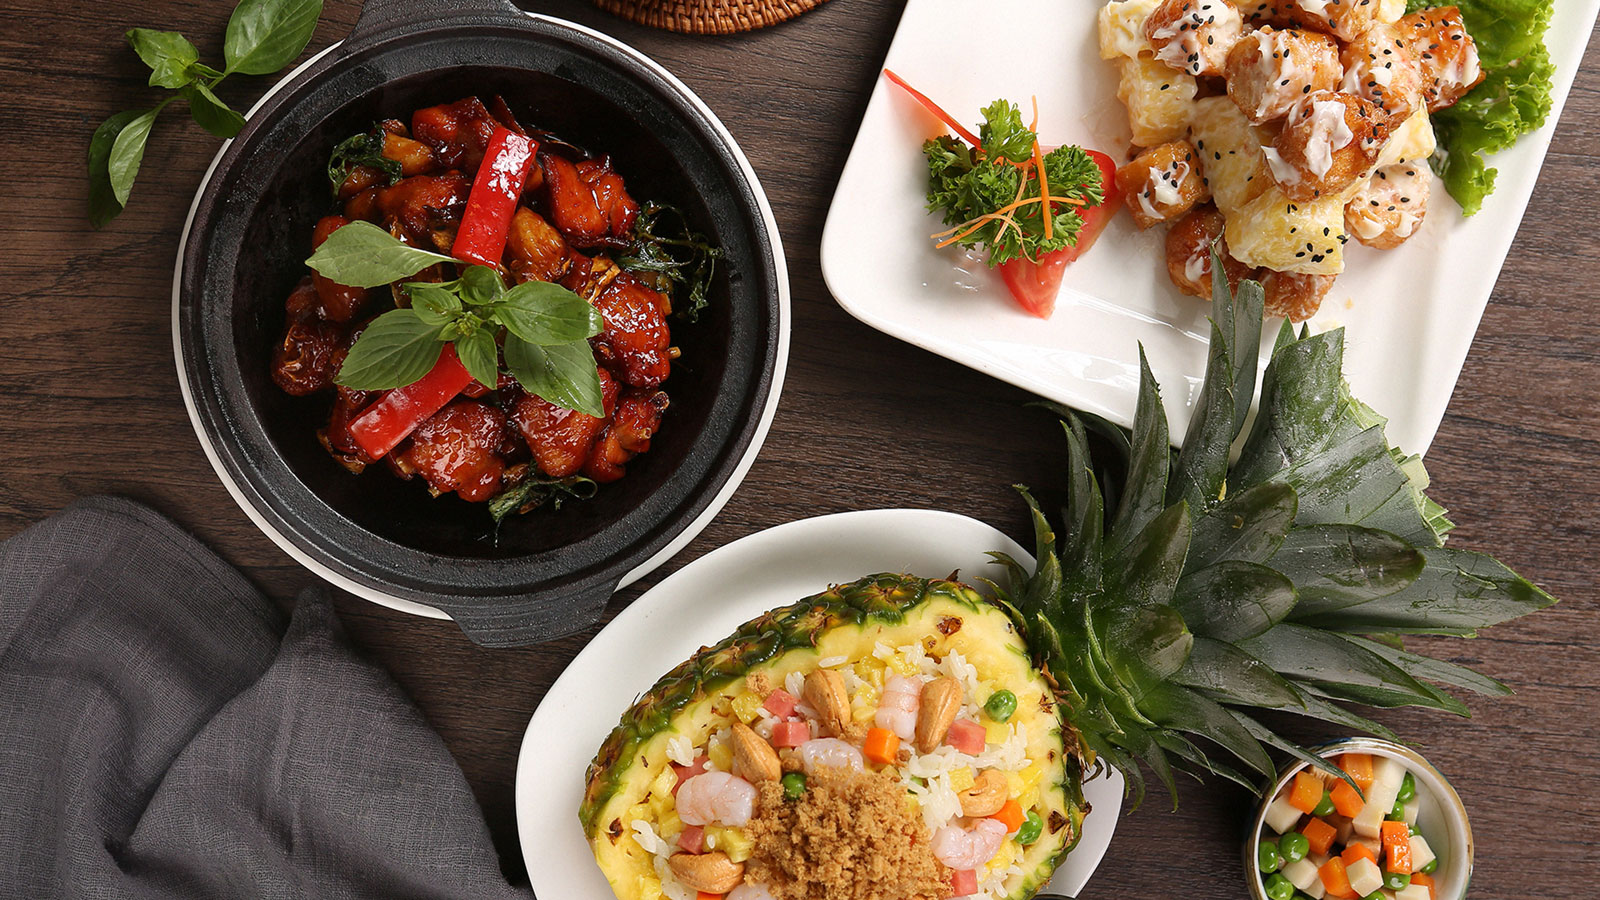 5 dishes that should not be ordered in restaurants